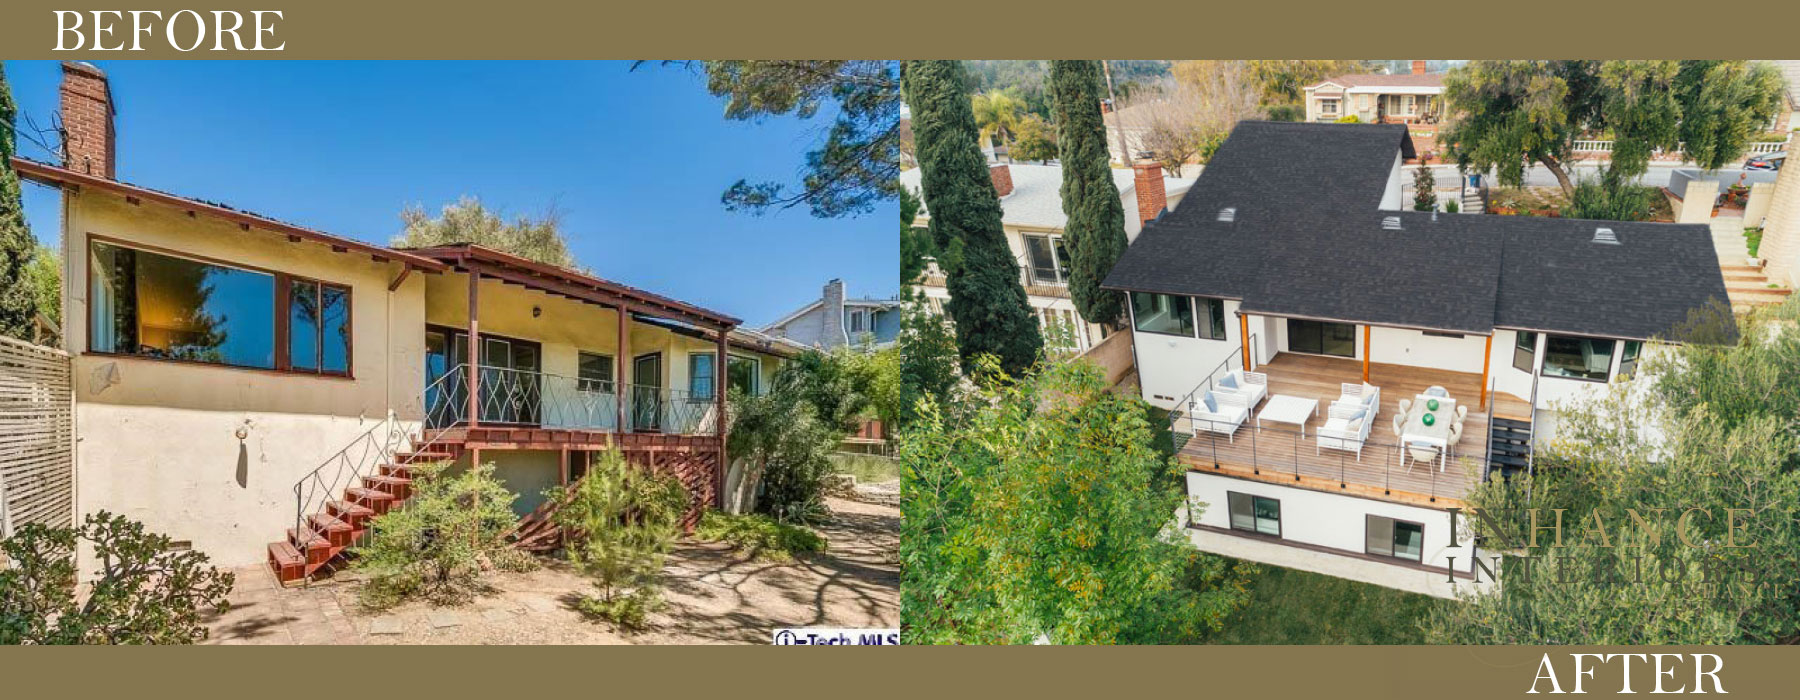 Sequoia_Before-and-After_Exterior.jpg